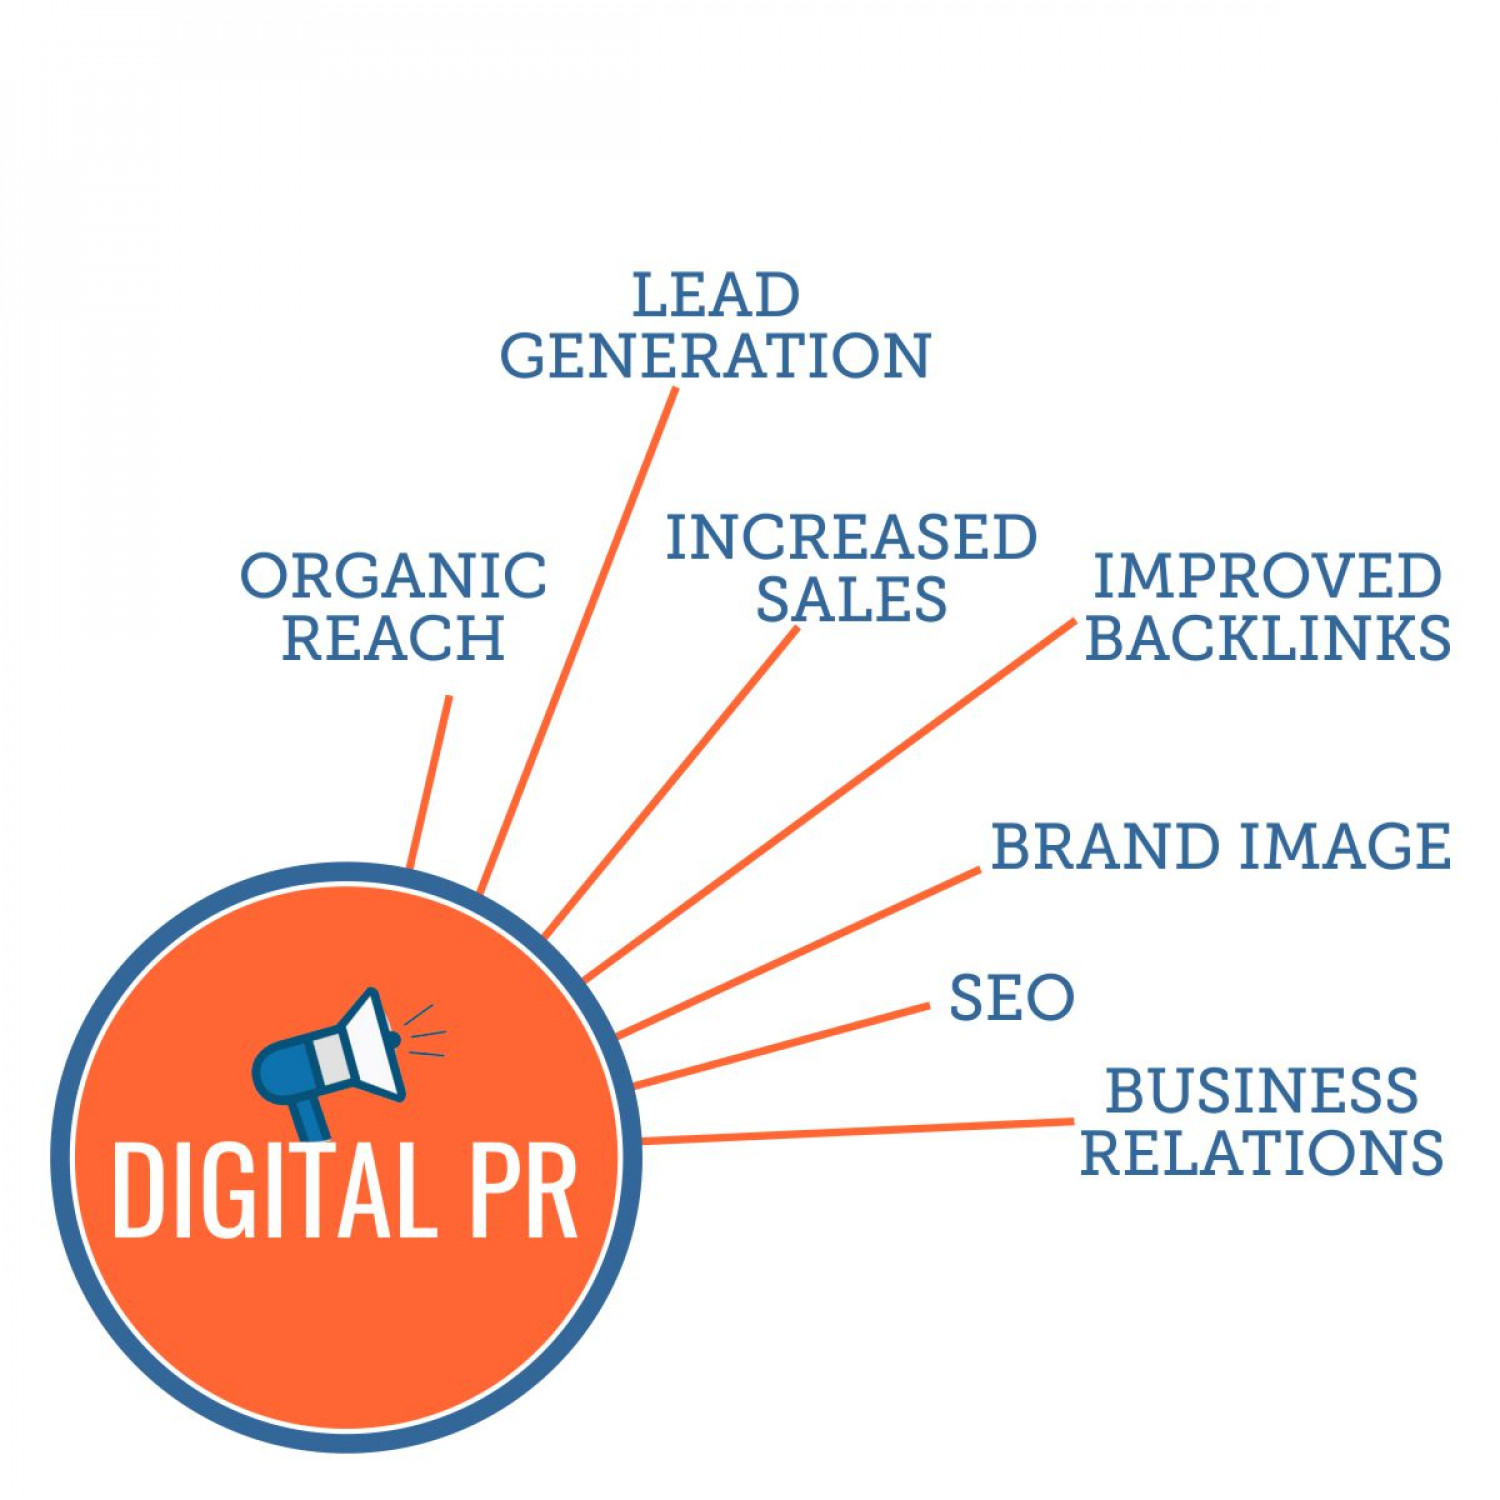 Digital Pr and its benefits  Infographic